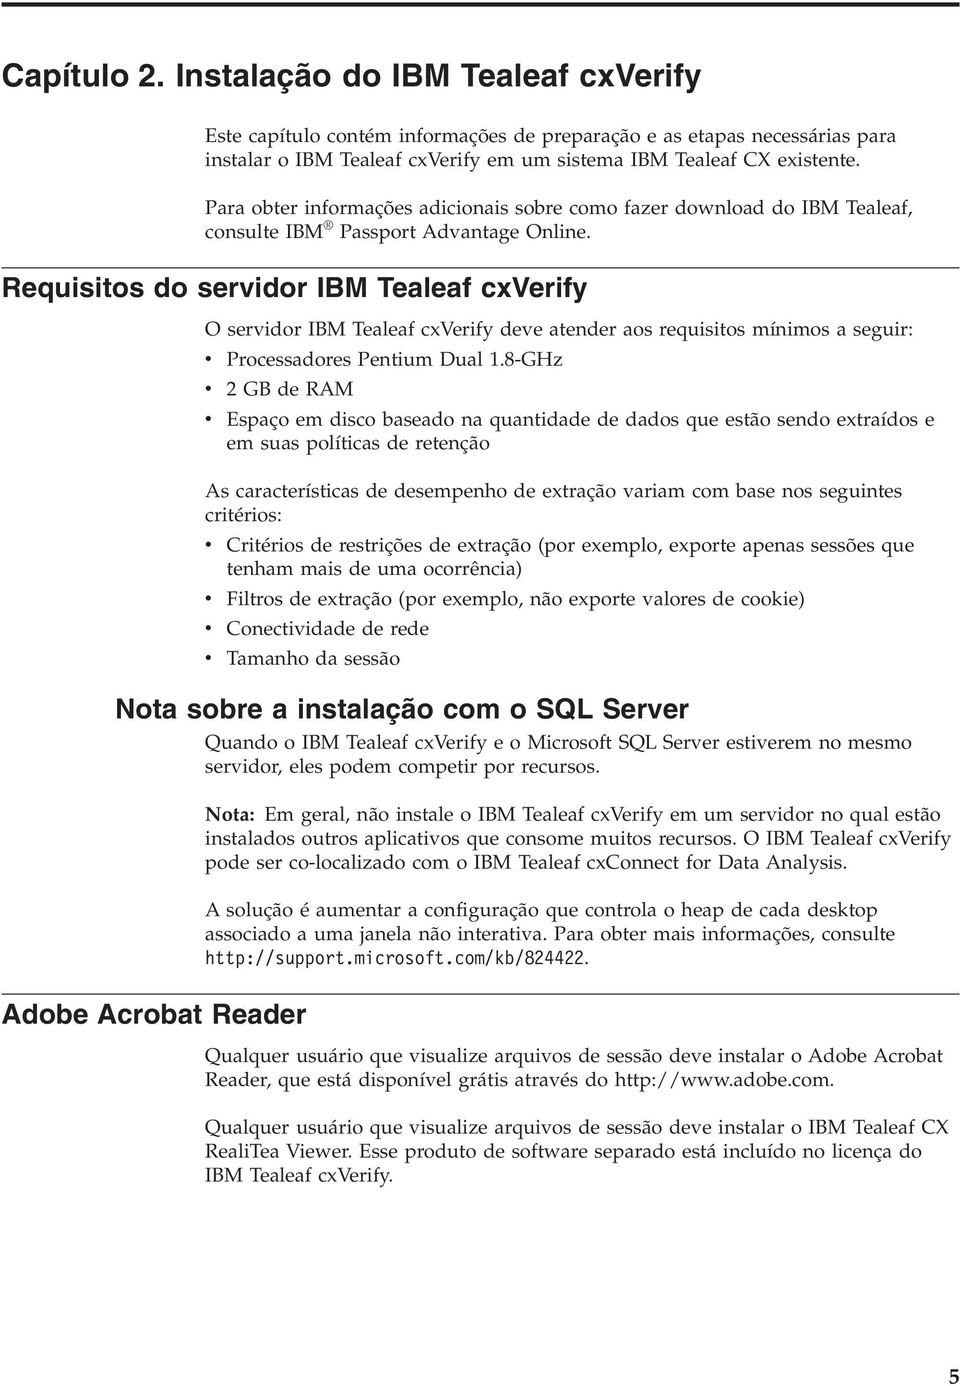 Requisitos do seridor IBM Tealeaf cxverify O seridor IBM Tealeaf cxverify dee atender aos requisitos mínimos a seguir: Processadores Pentium Dual 1.